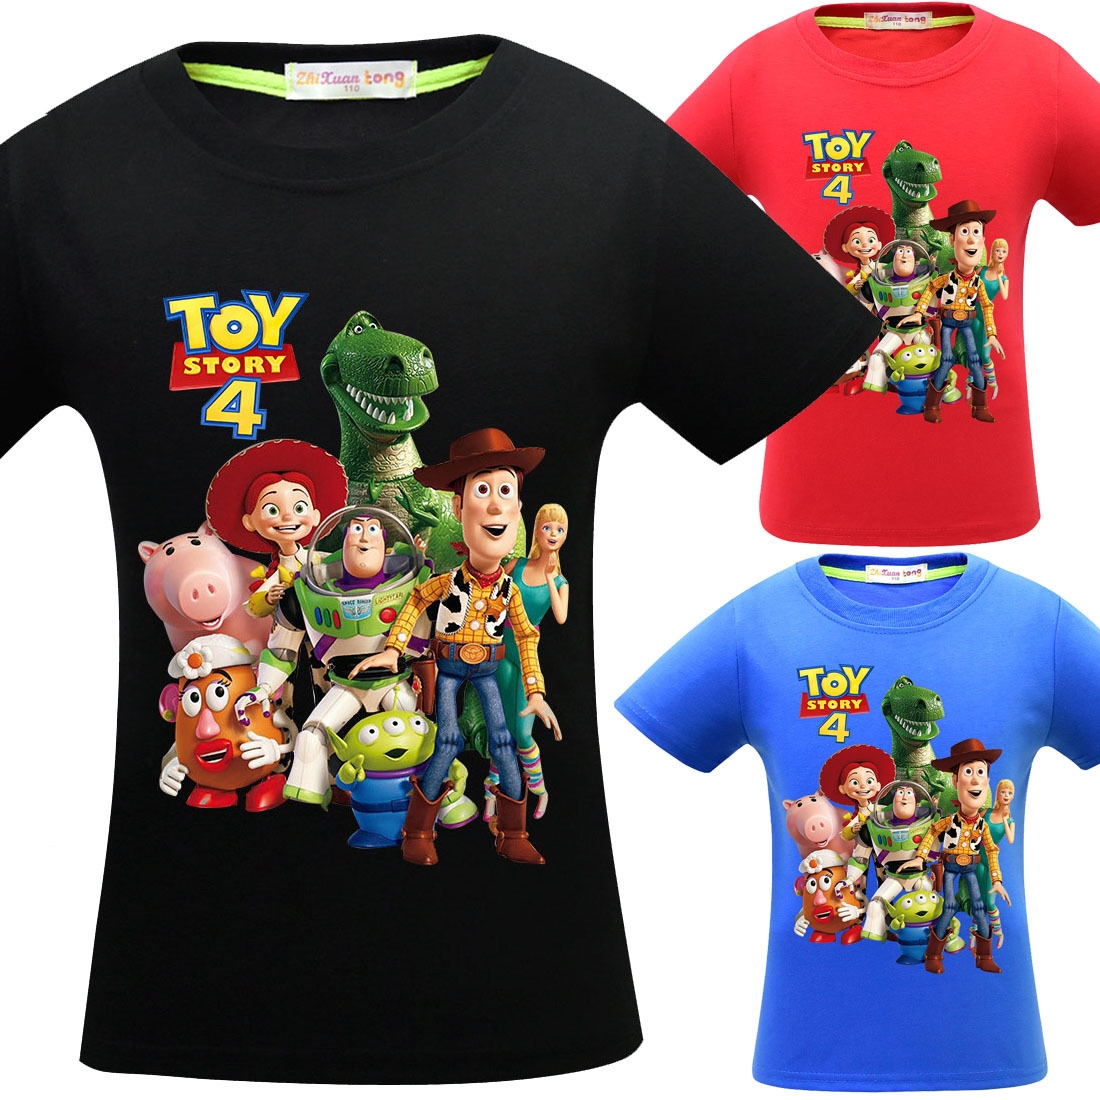 Toy Story Boy t-Shirt Clothing Short-Sleeved 4-12-Years-Old Children's Cotton New Big